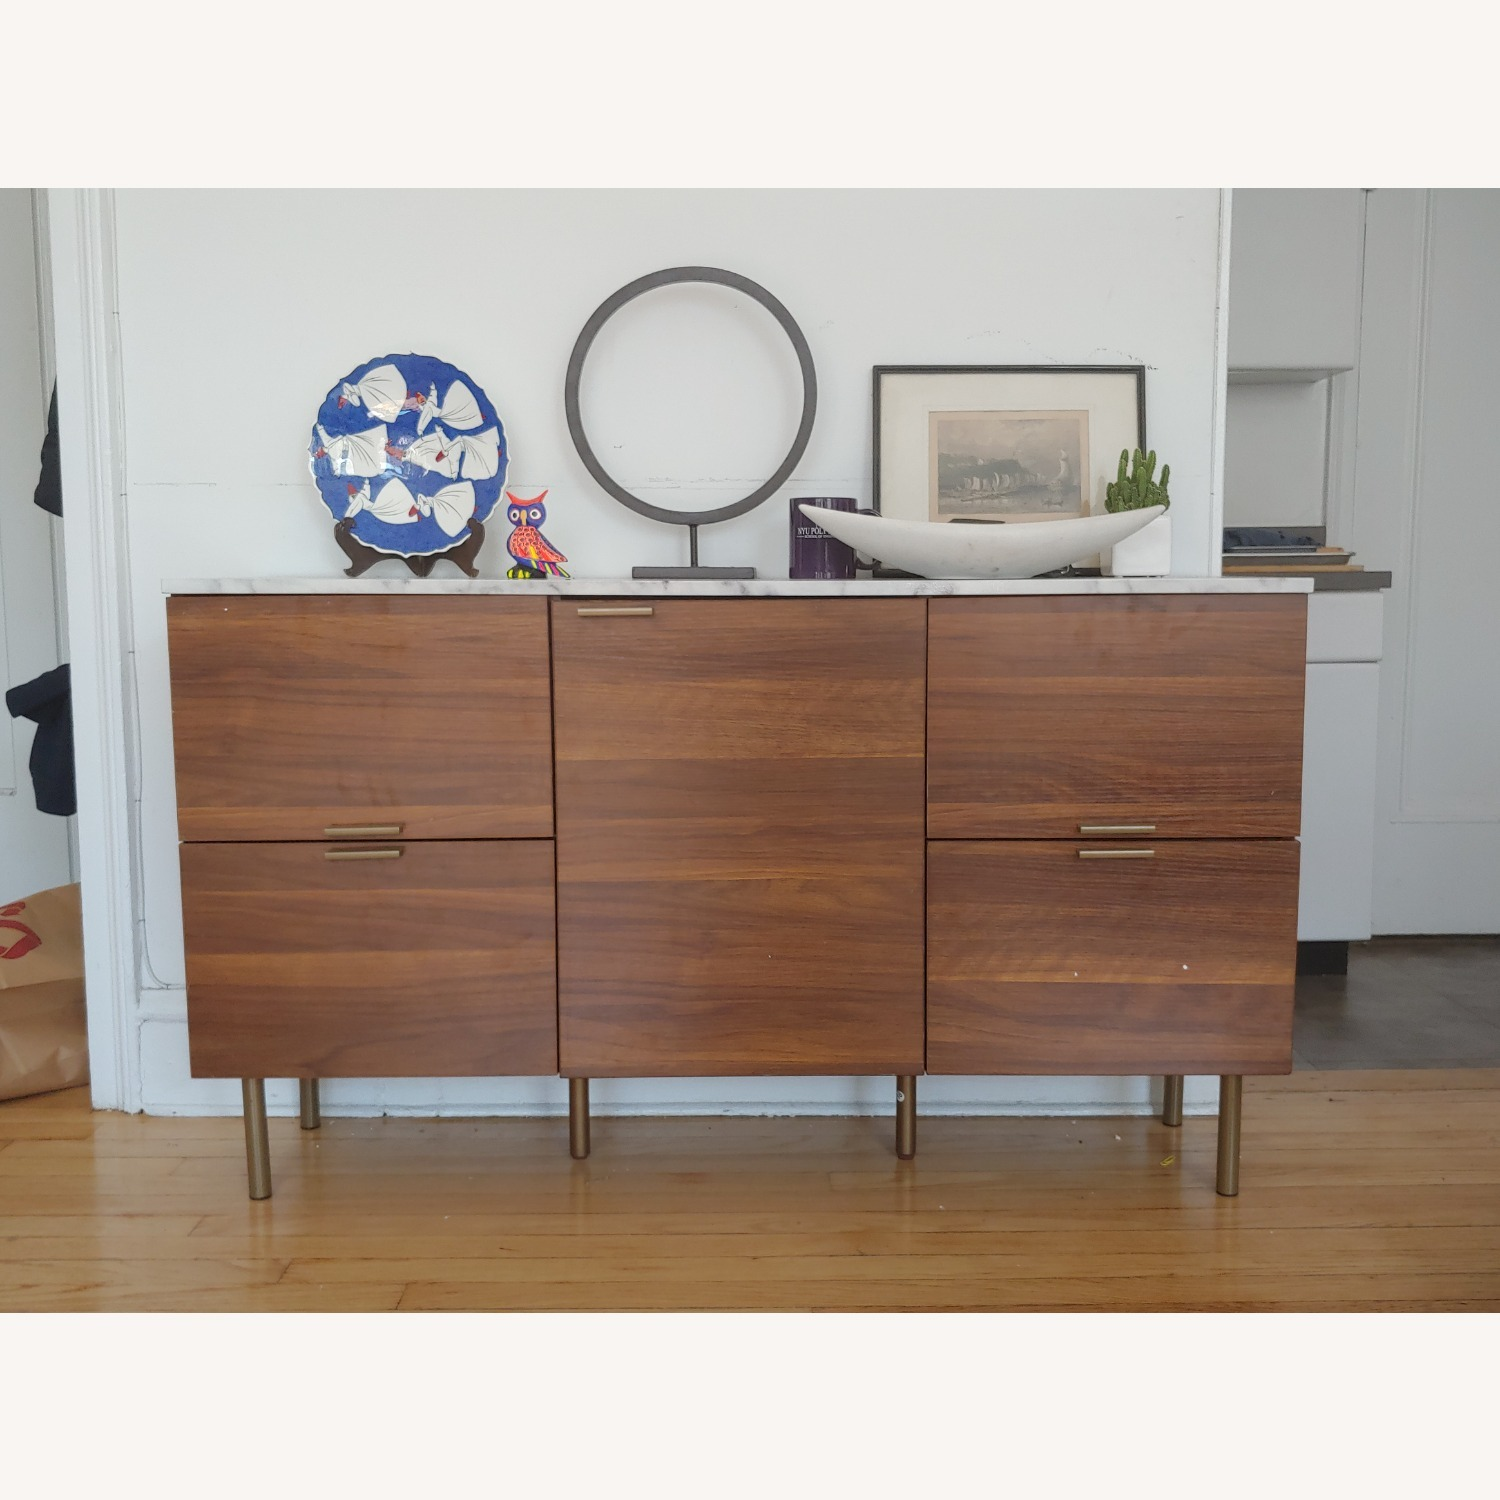 Wayfair Faux Marble Topped Sideboard - image-1